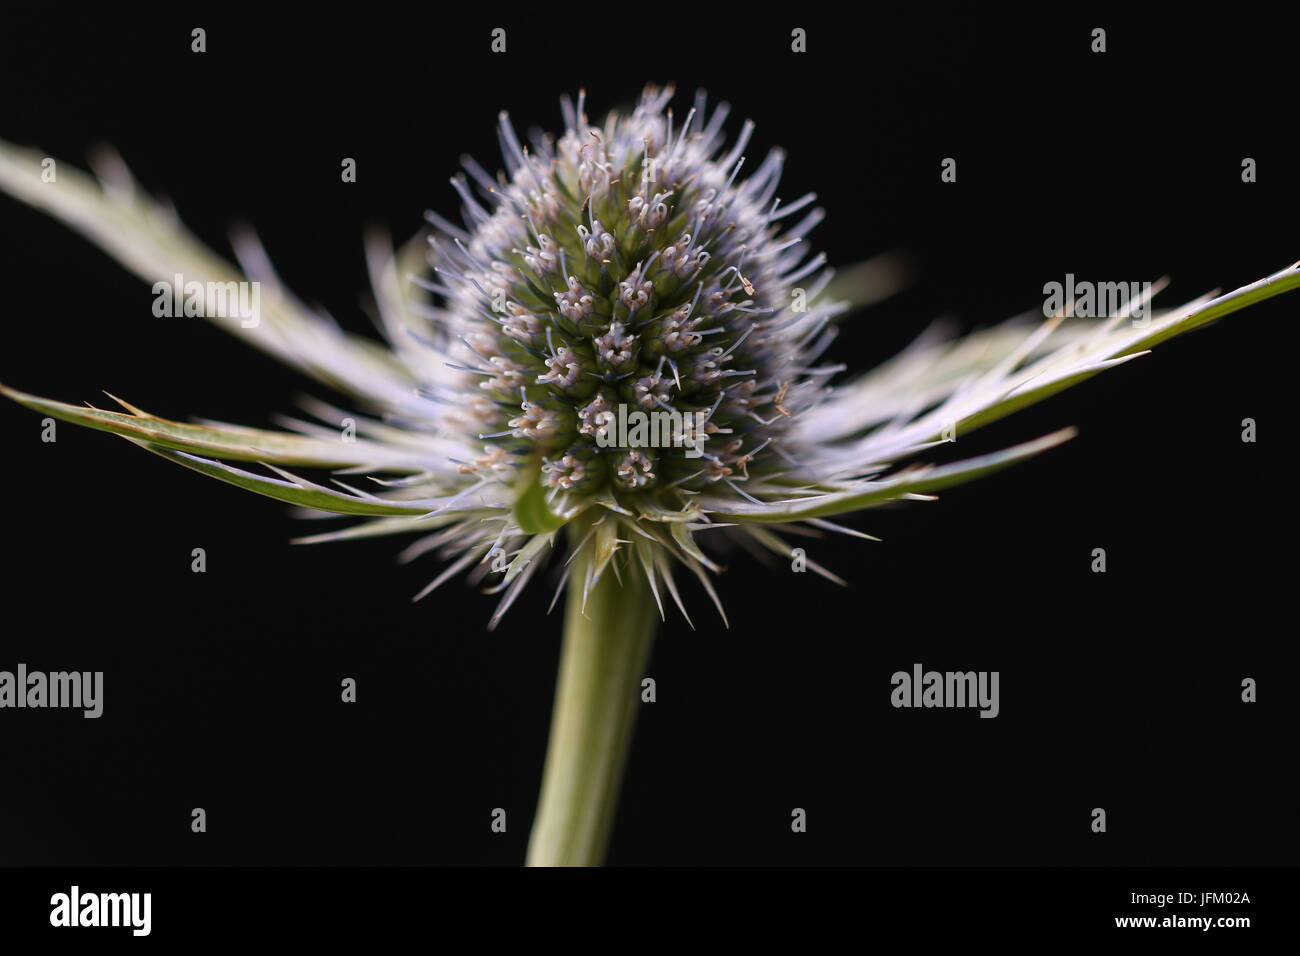 Close up of flower head of Eryngium Neptunes Gold, Shepperton, England, U.K. - Stock Image